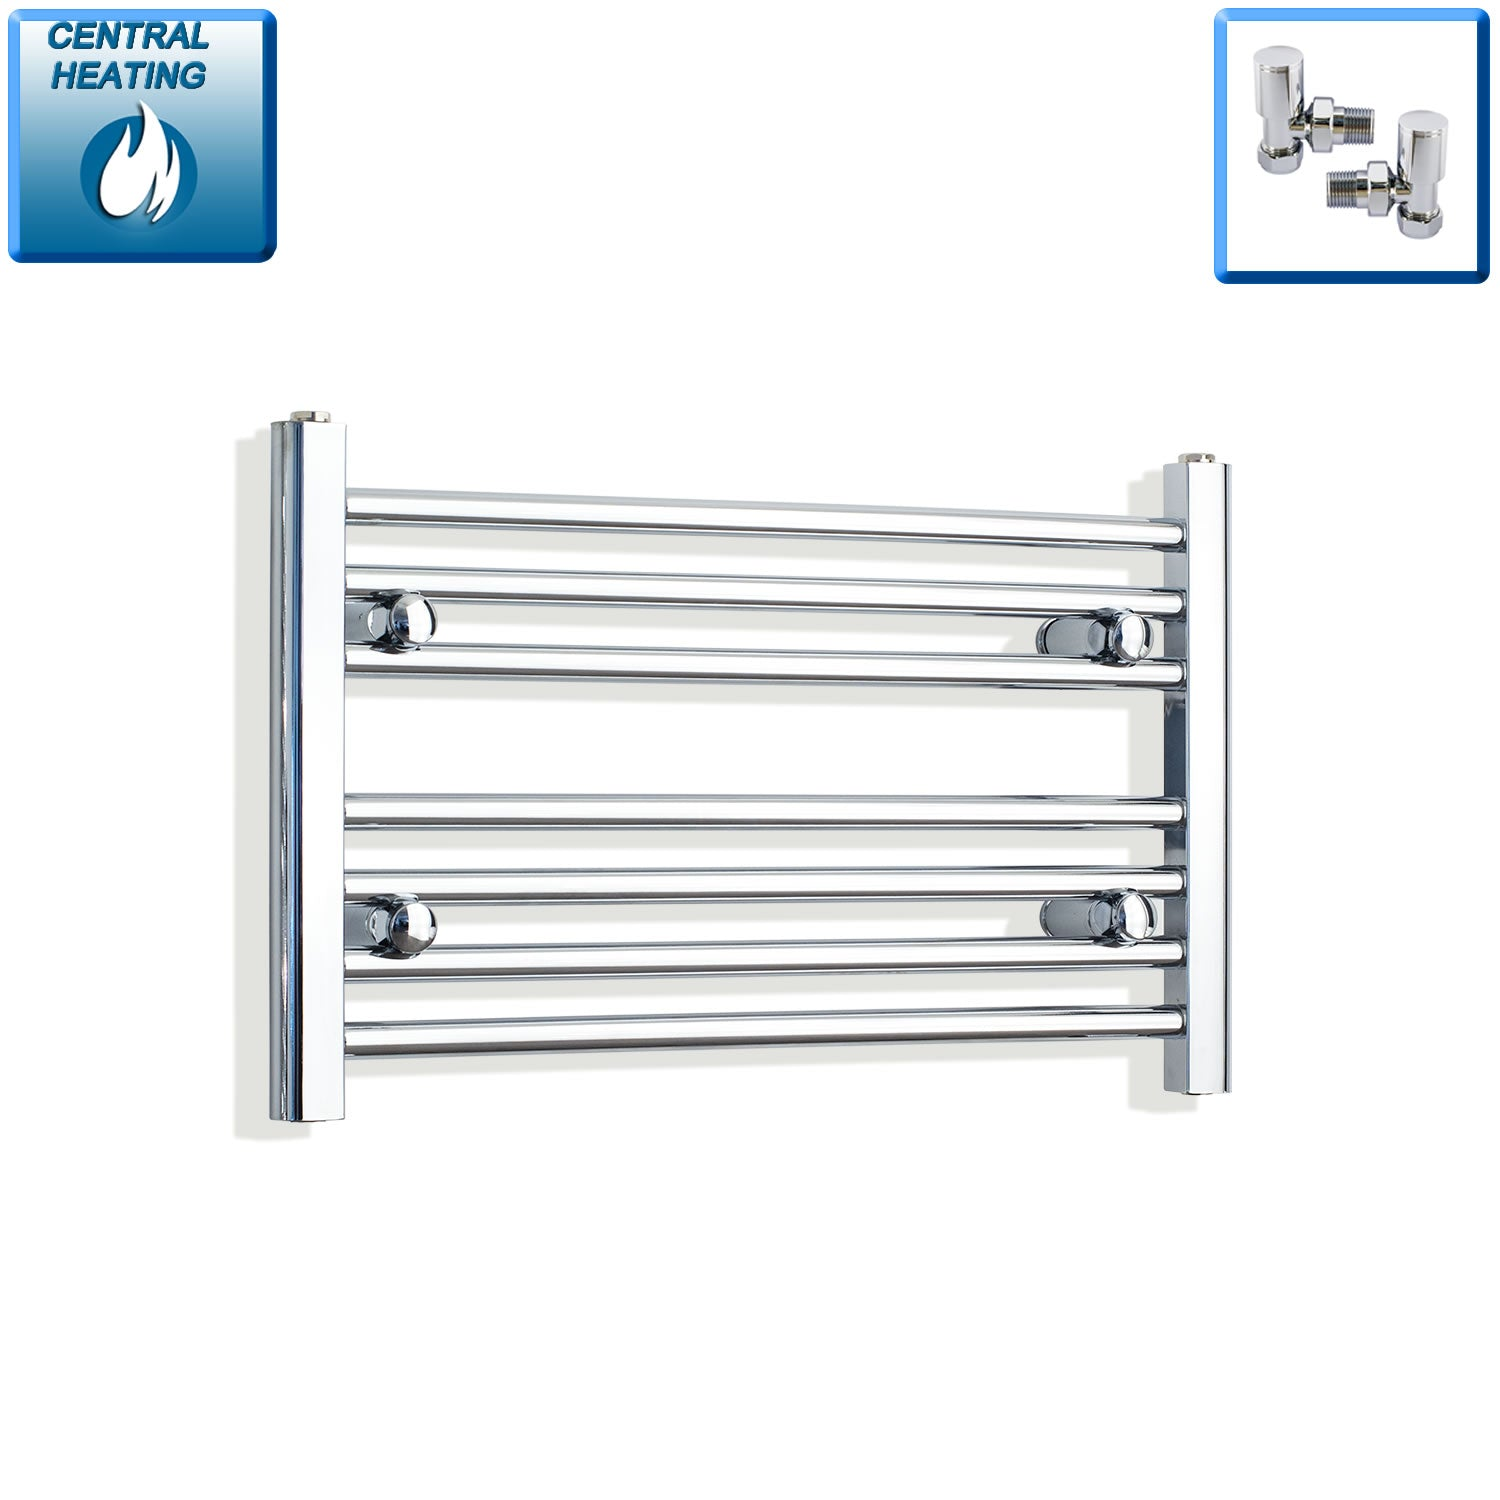 600mm Wide 400mm High Chrome Towel Rail Radiator With Angled Valve